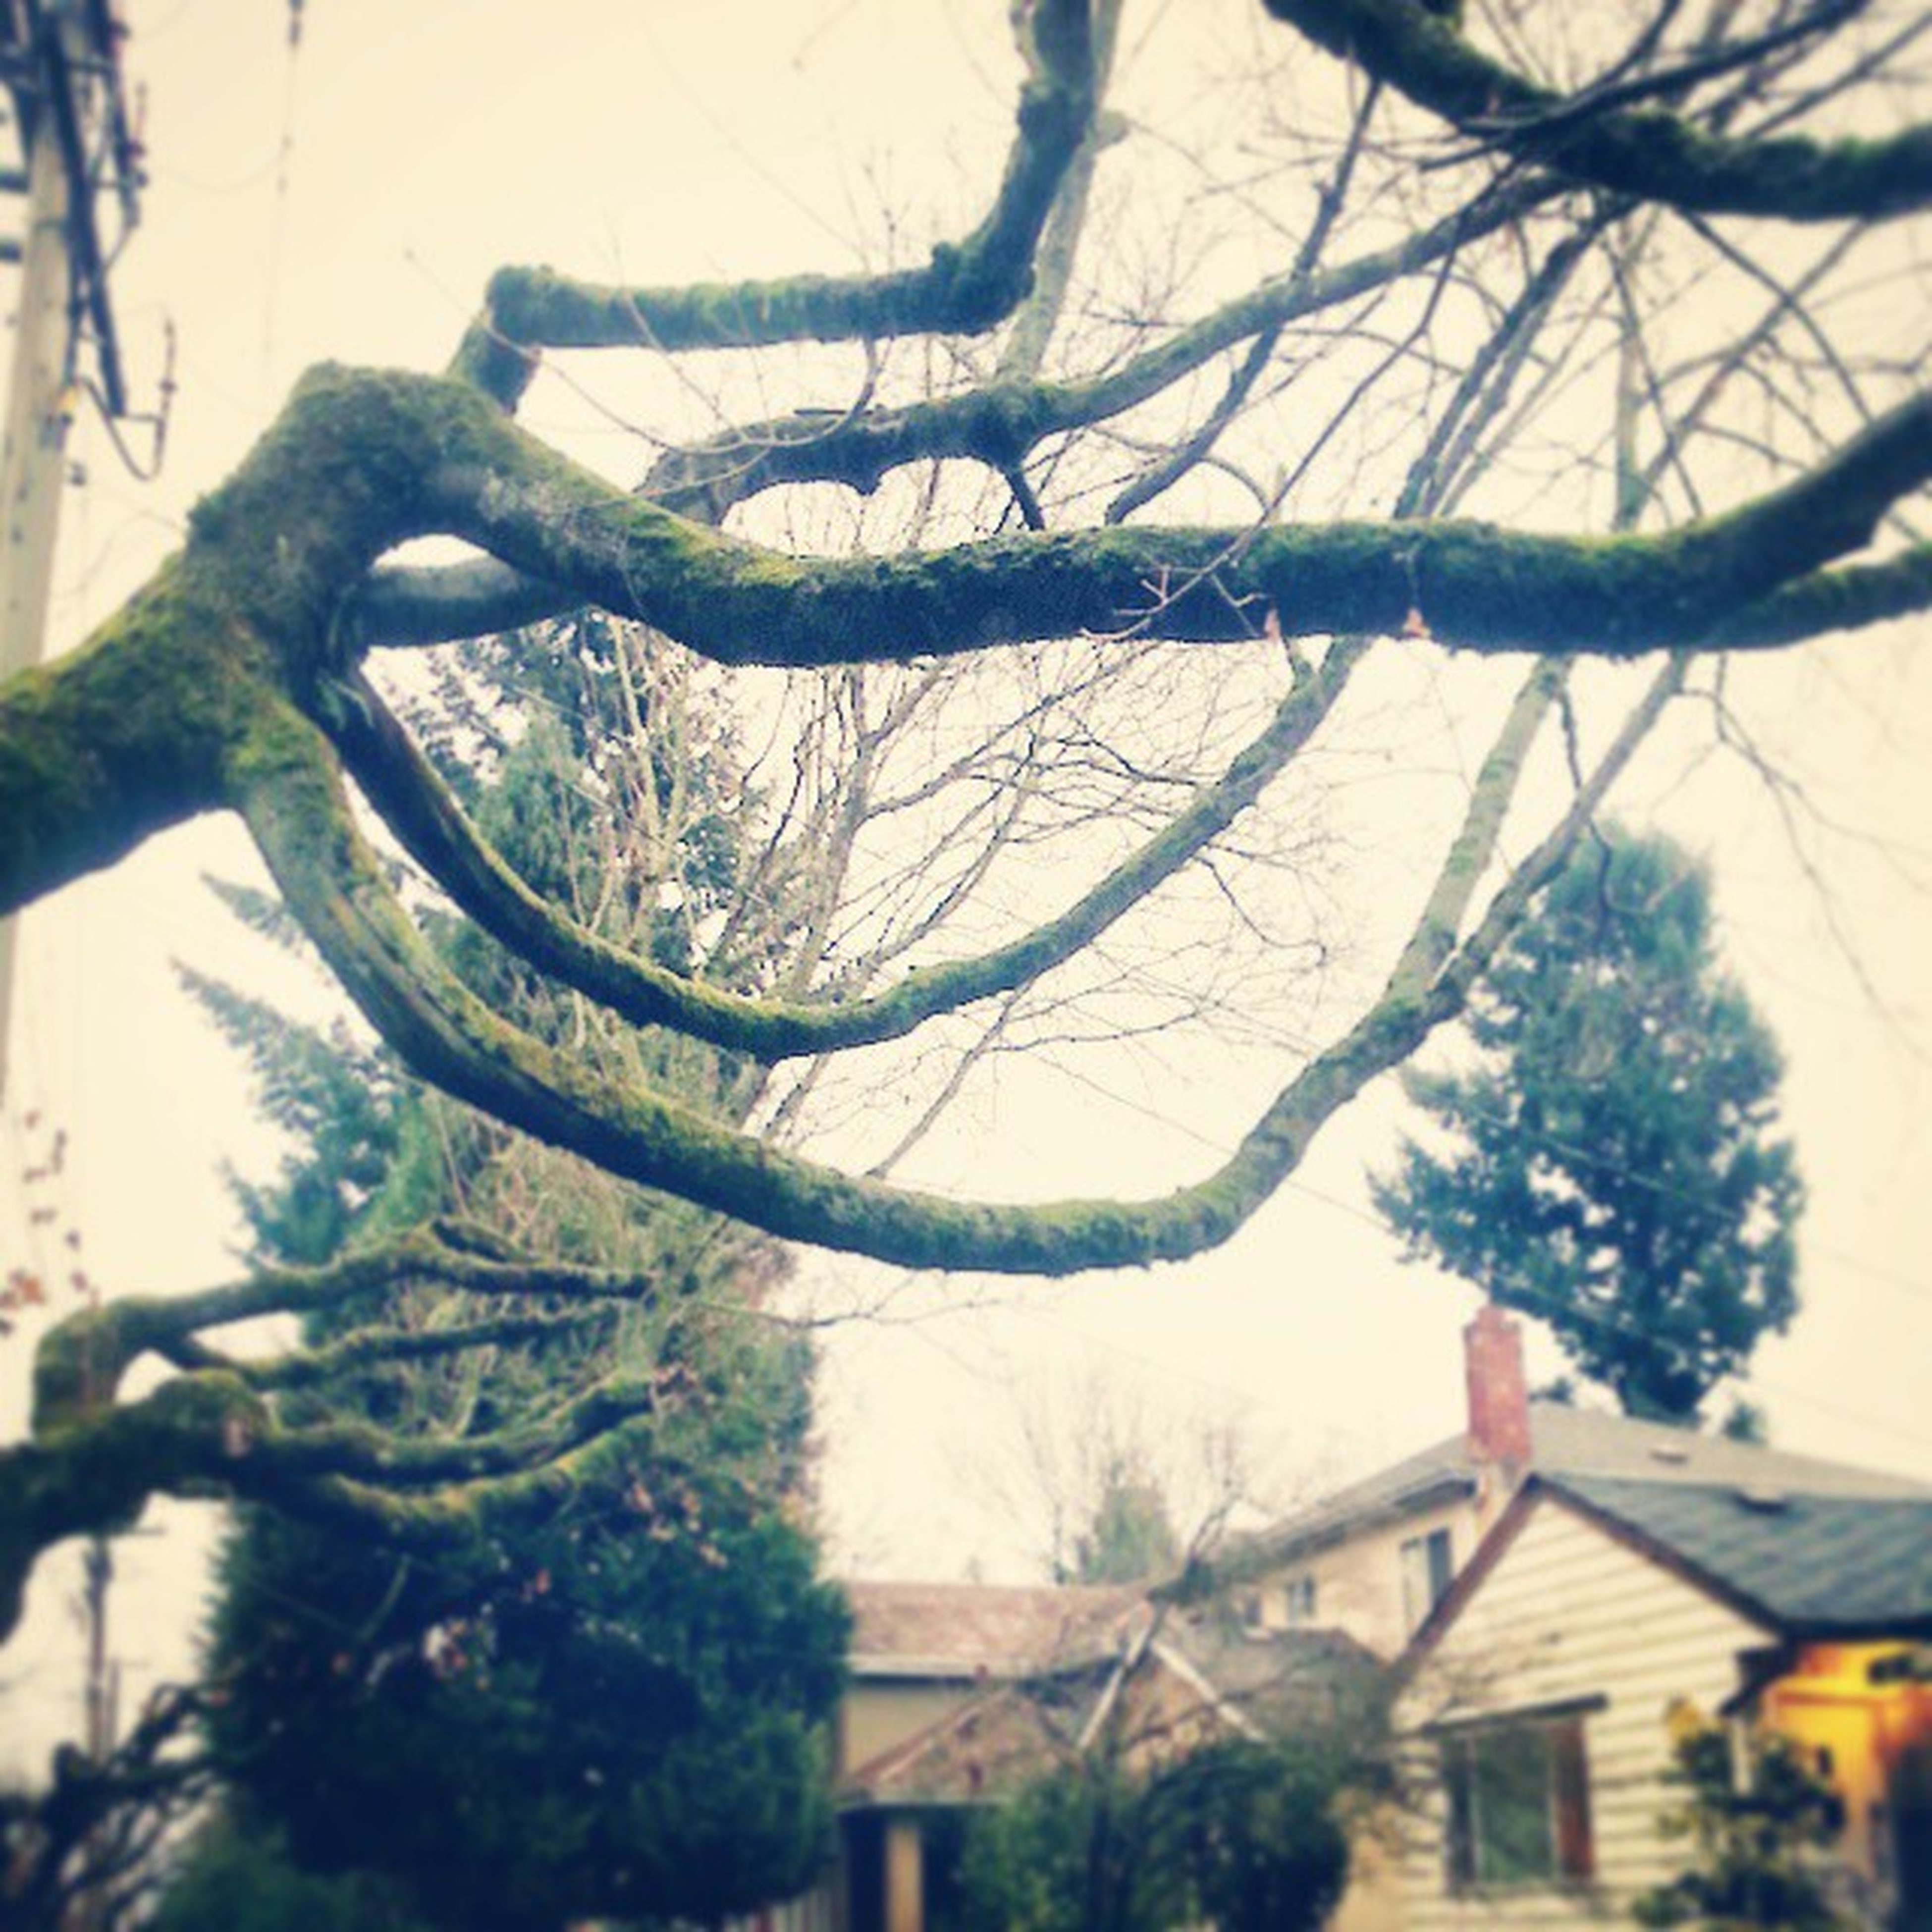 tree, branch, building exterior, architecture, bare tree, built structure, tree trunk, house, low angle view, growth, day, residential structure, sky, nature, outdoors, residential building, no people, roof, building, city